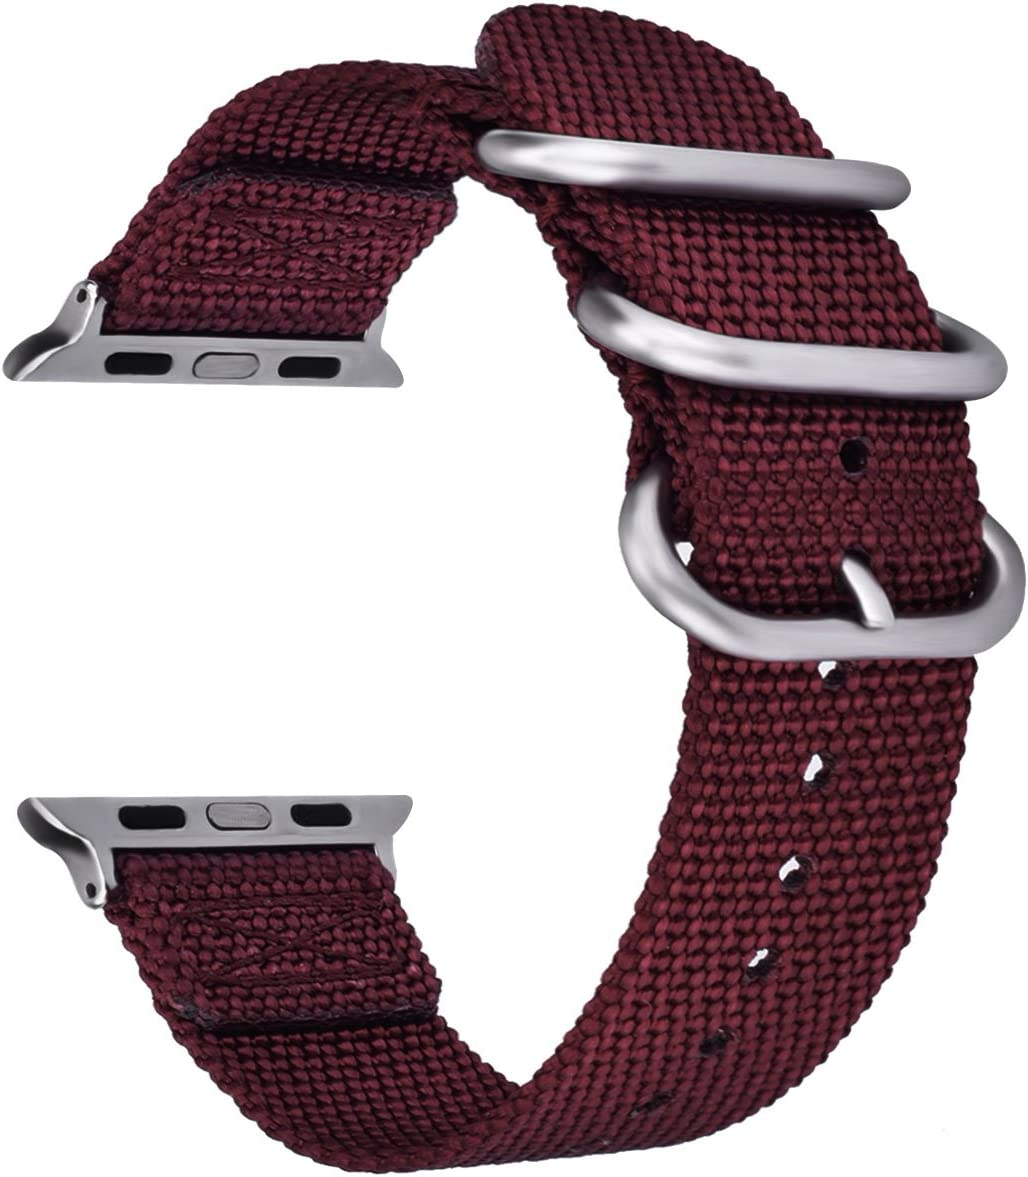 VIGOSS Bands for 40mm Apple Watch Band 38mm Women, Woven Nylon NATO iWatch Bands Soft Replacement Strap with Metal Buckle Bracelet for Apple Watch Series 4 3 2 1 Sport (Maroon,38mm/40mm)